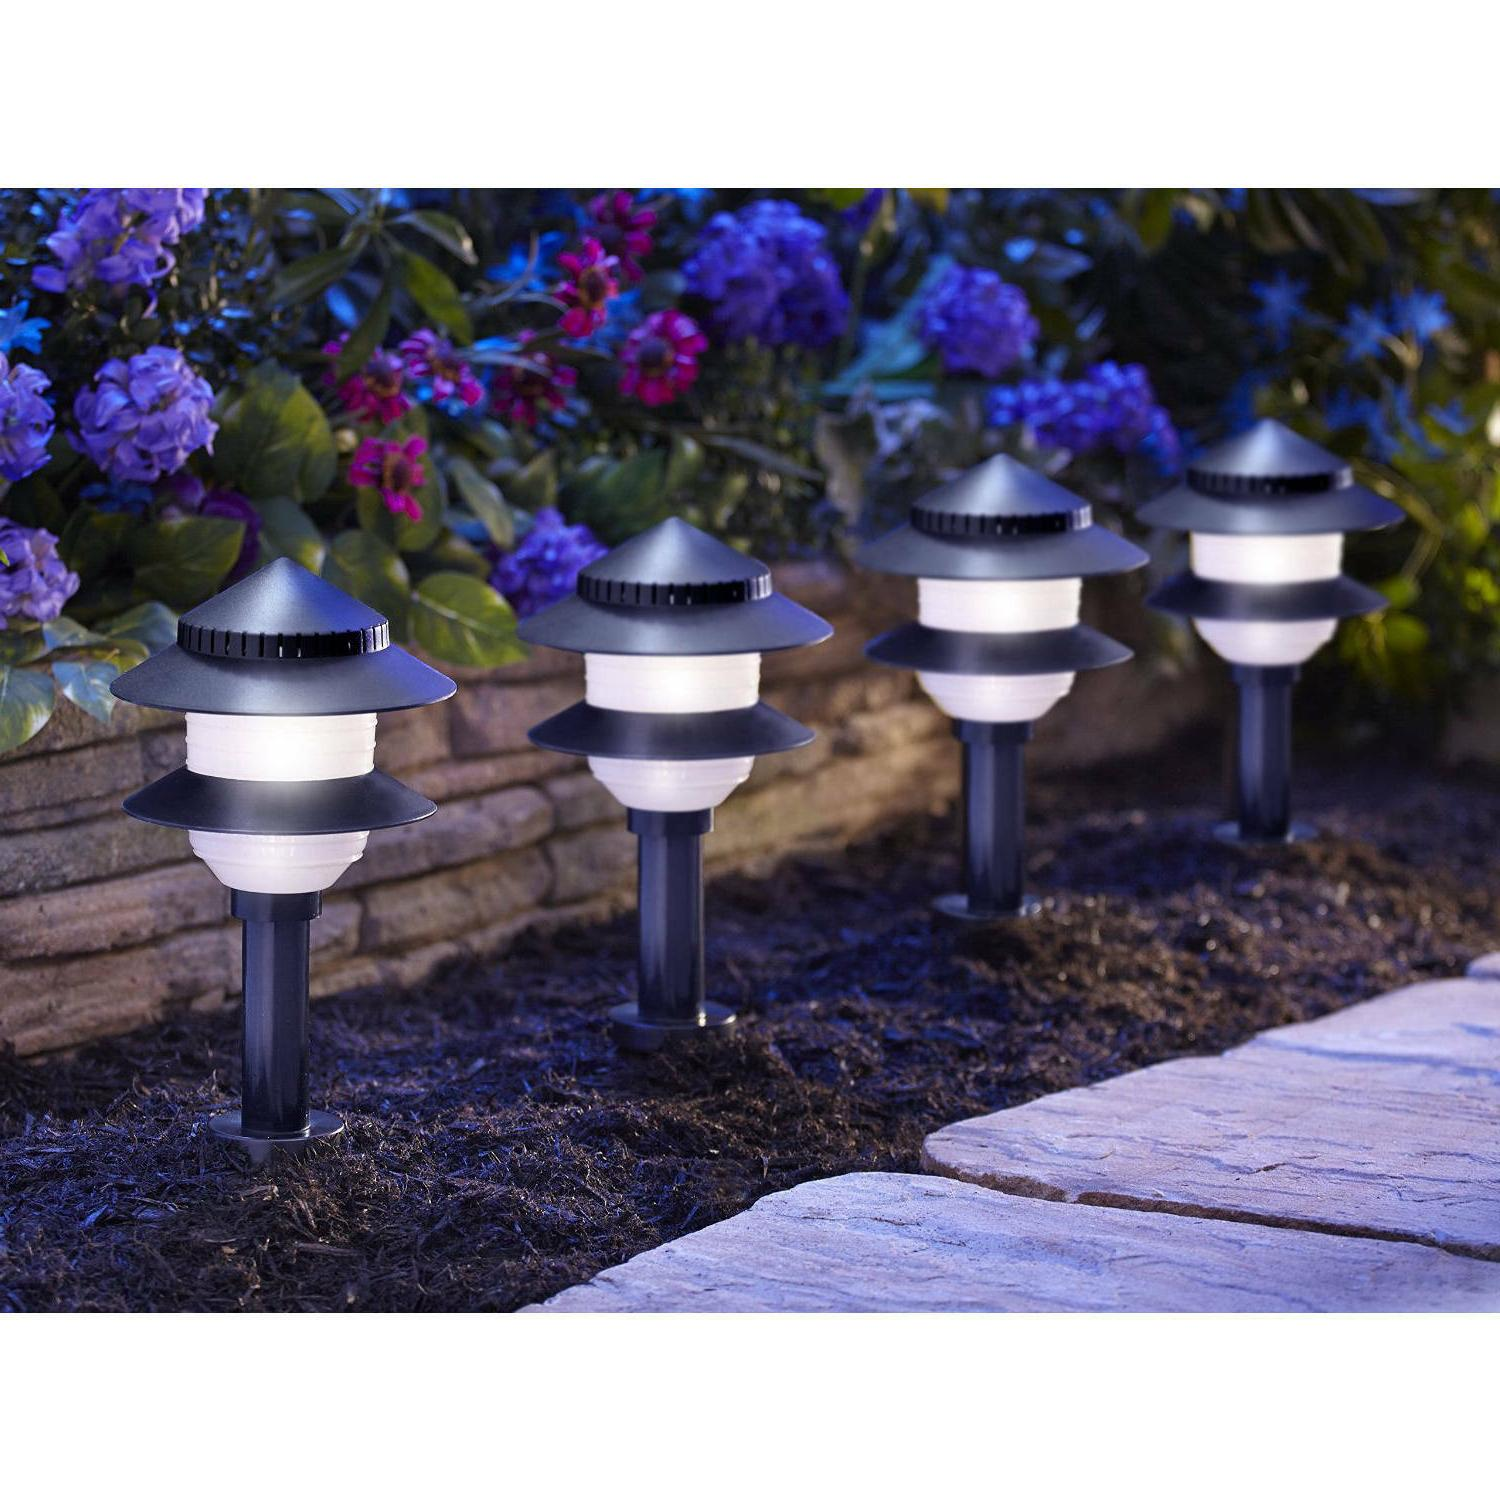 95534 black solar path lights in tiered